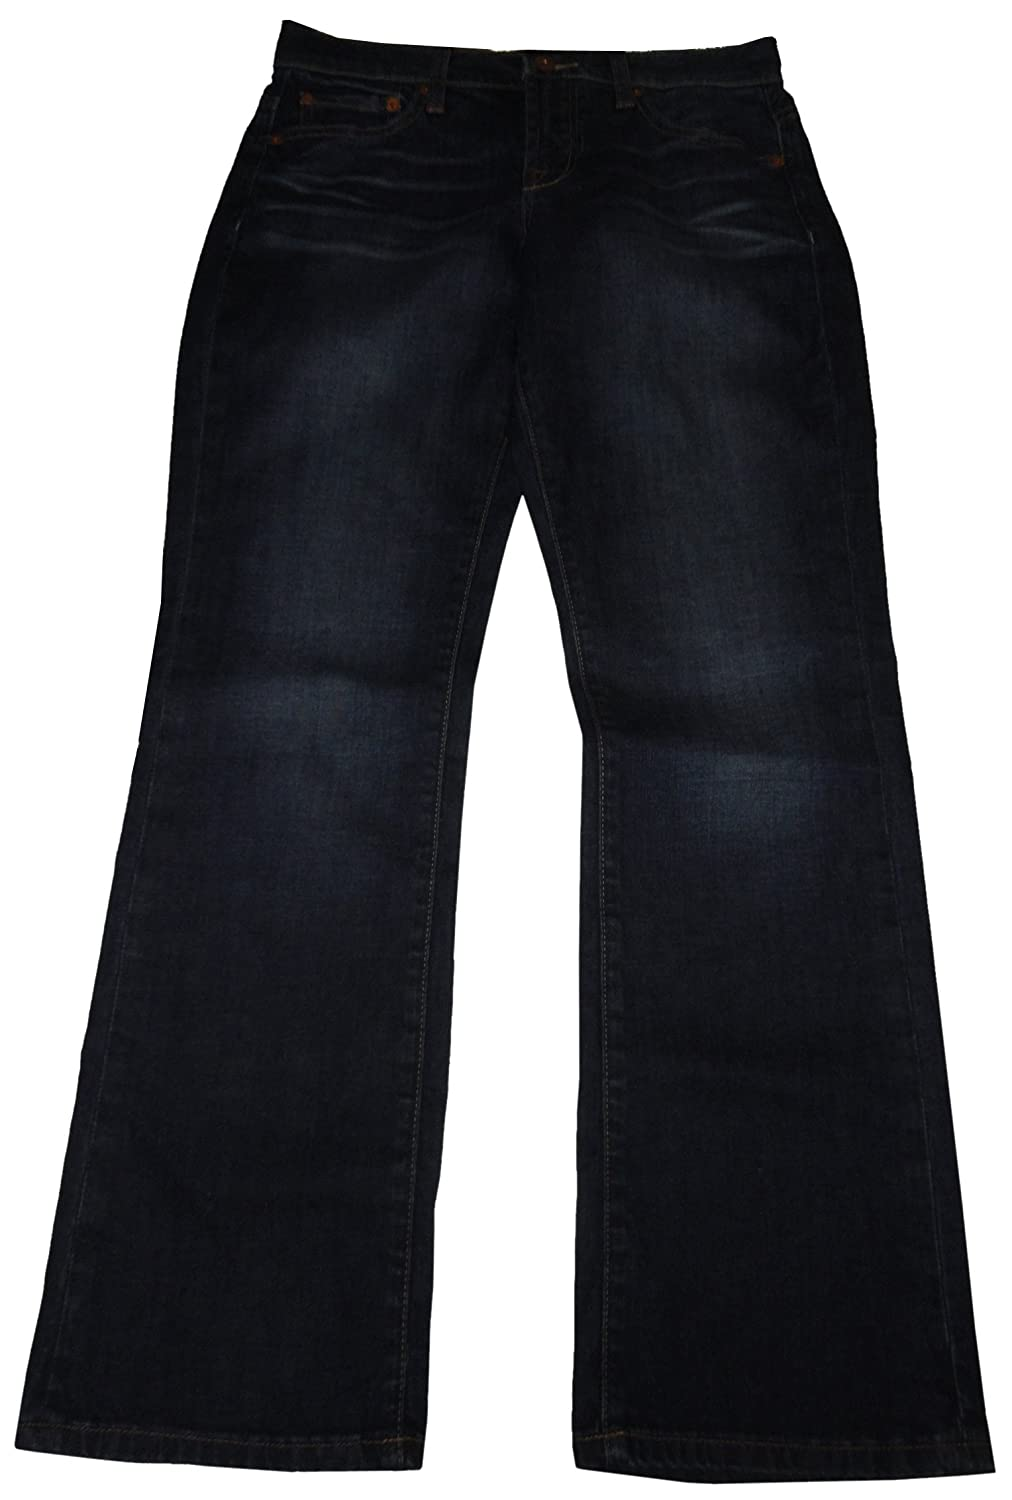 Lucky Brand Women's 'Easy Rider' Blue Denim Jeans, Size 16/33- L30 Ankle